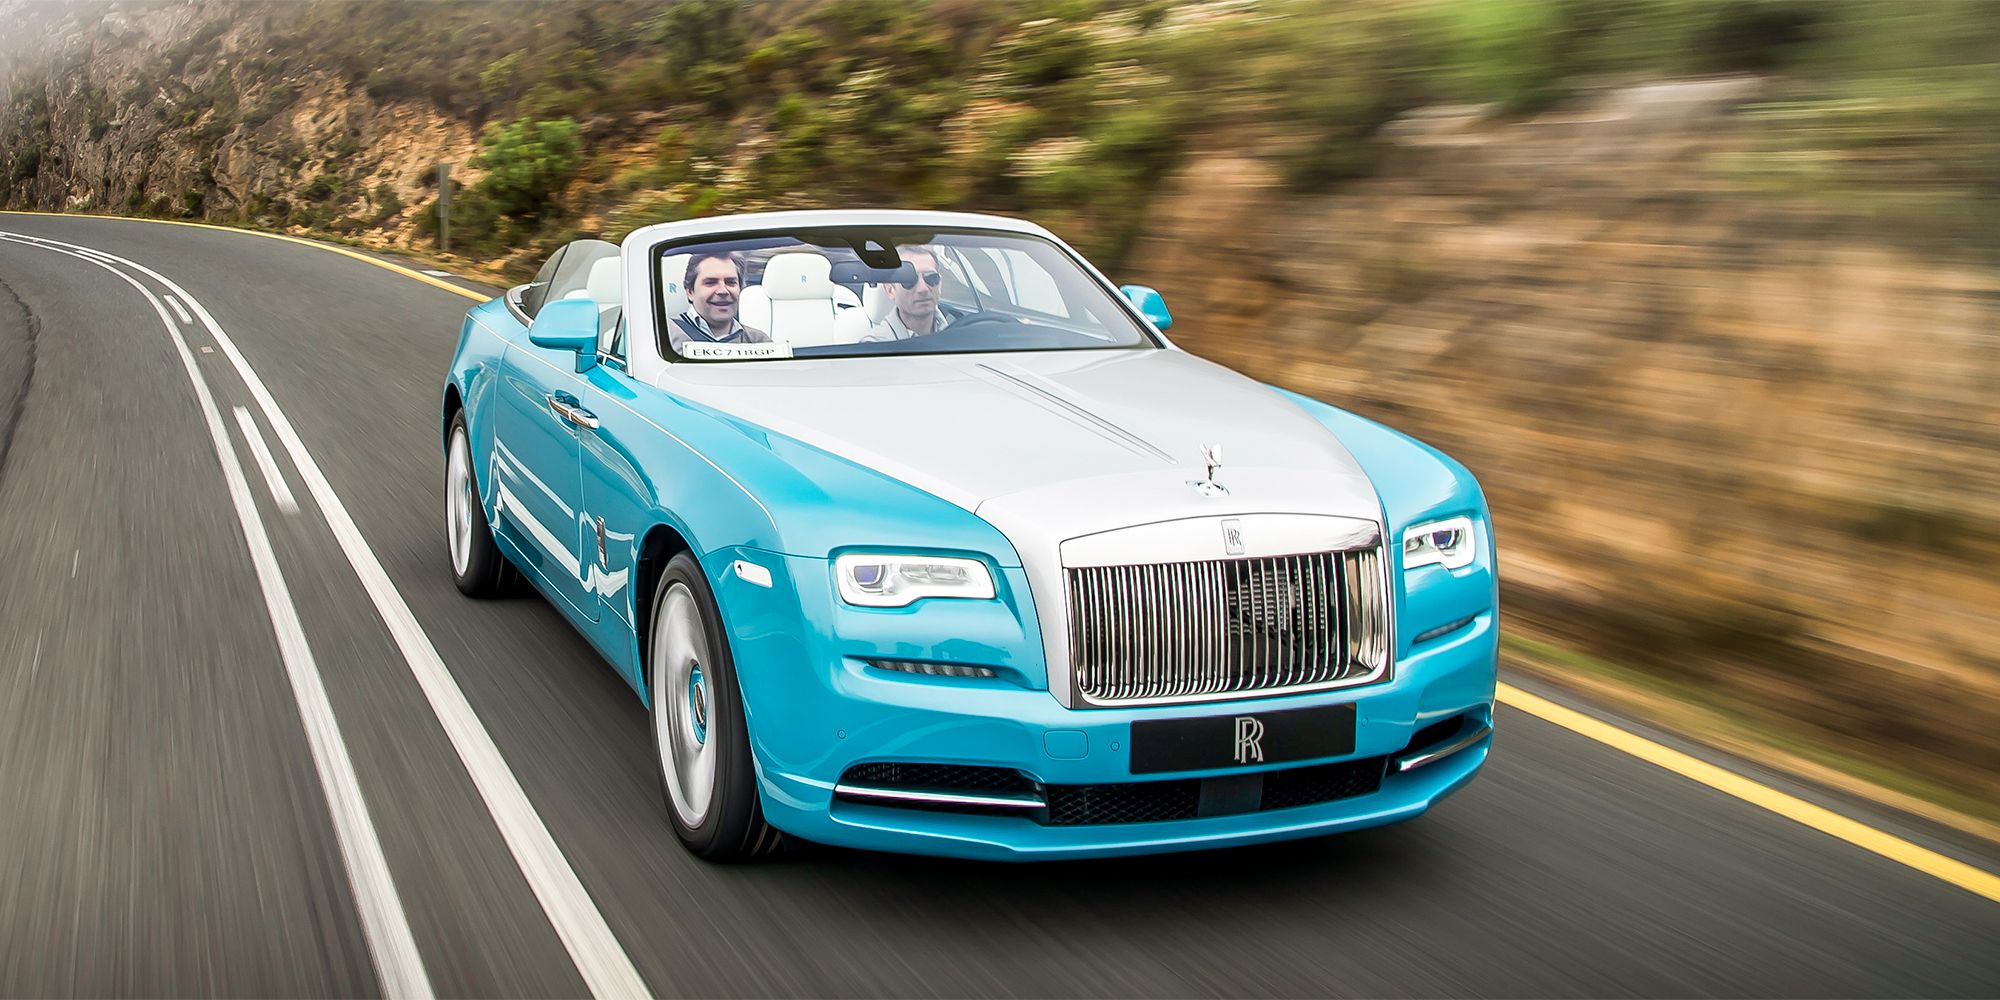 18 Best Luxury Car Brands Top Expensive Car Brands In The World